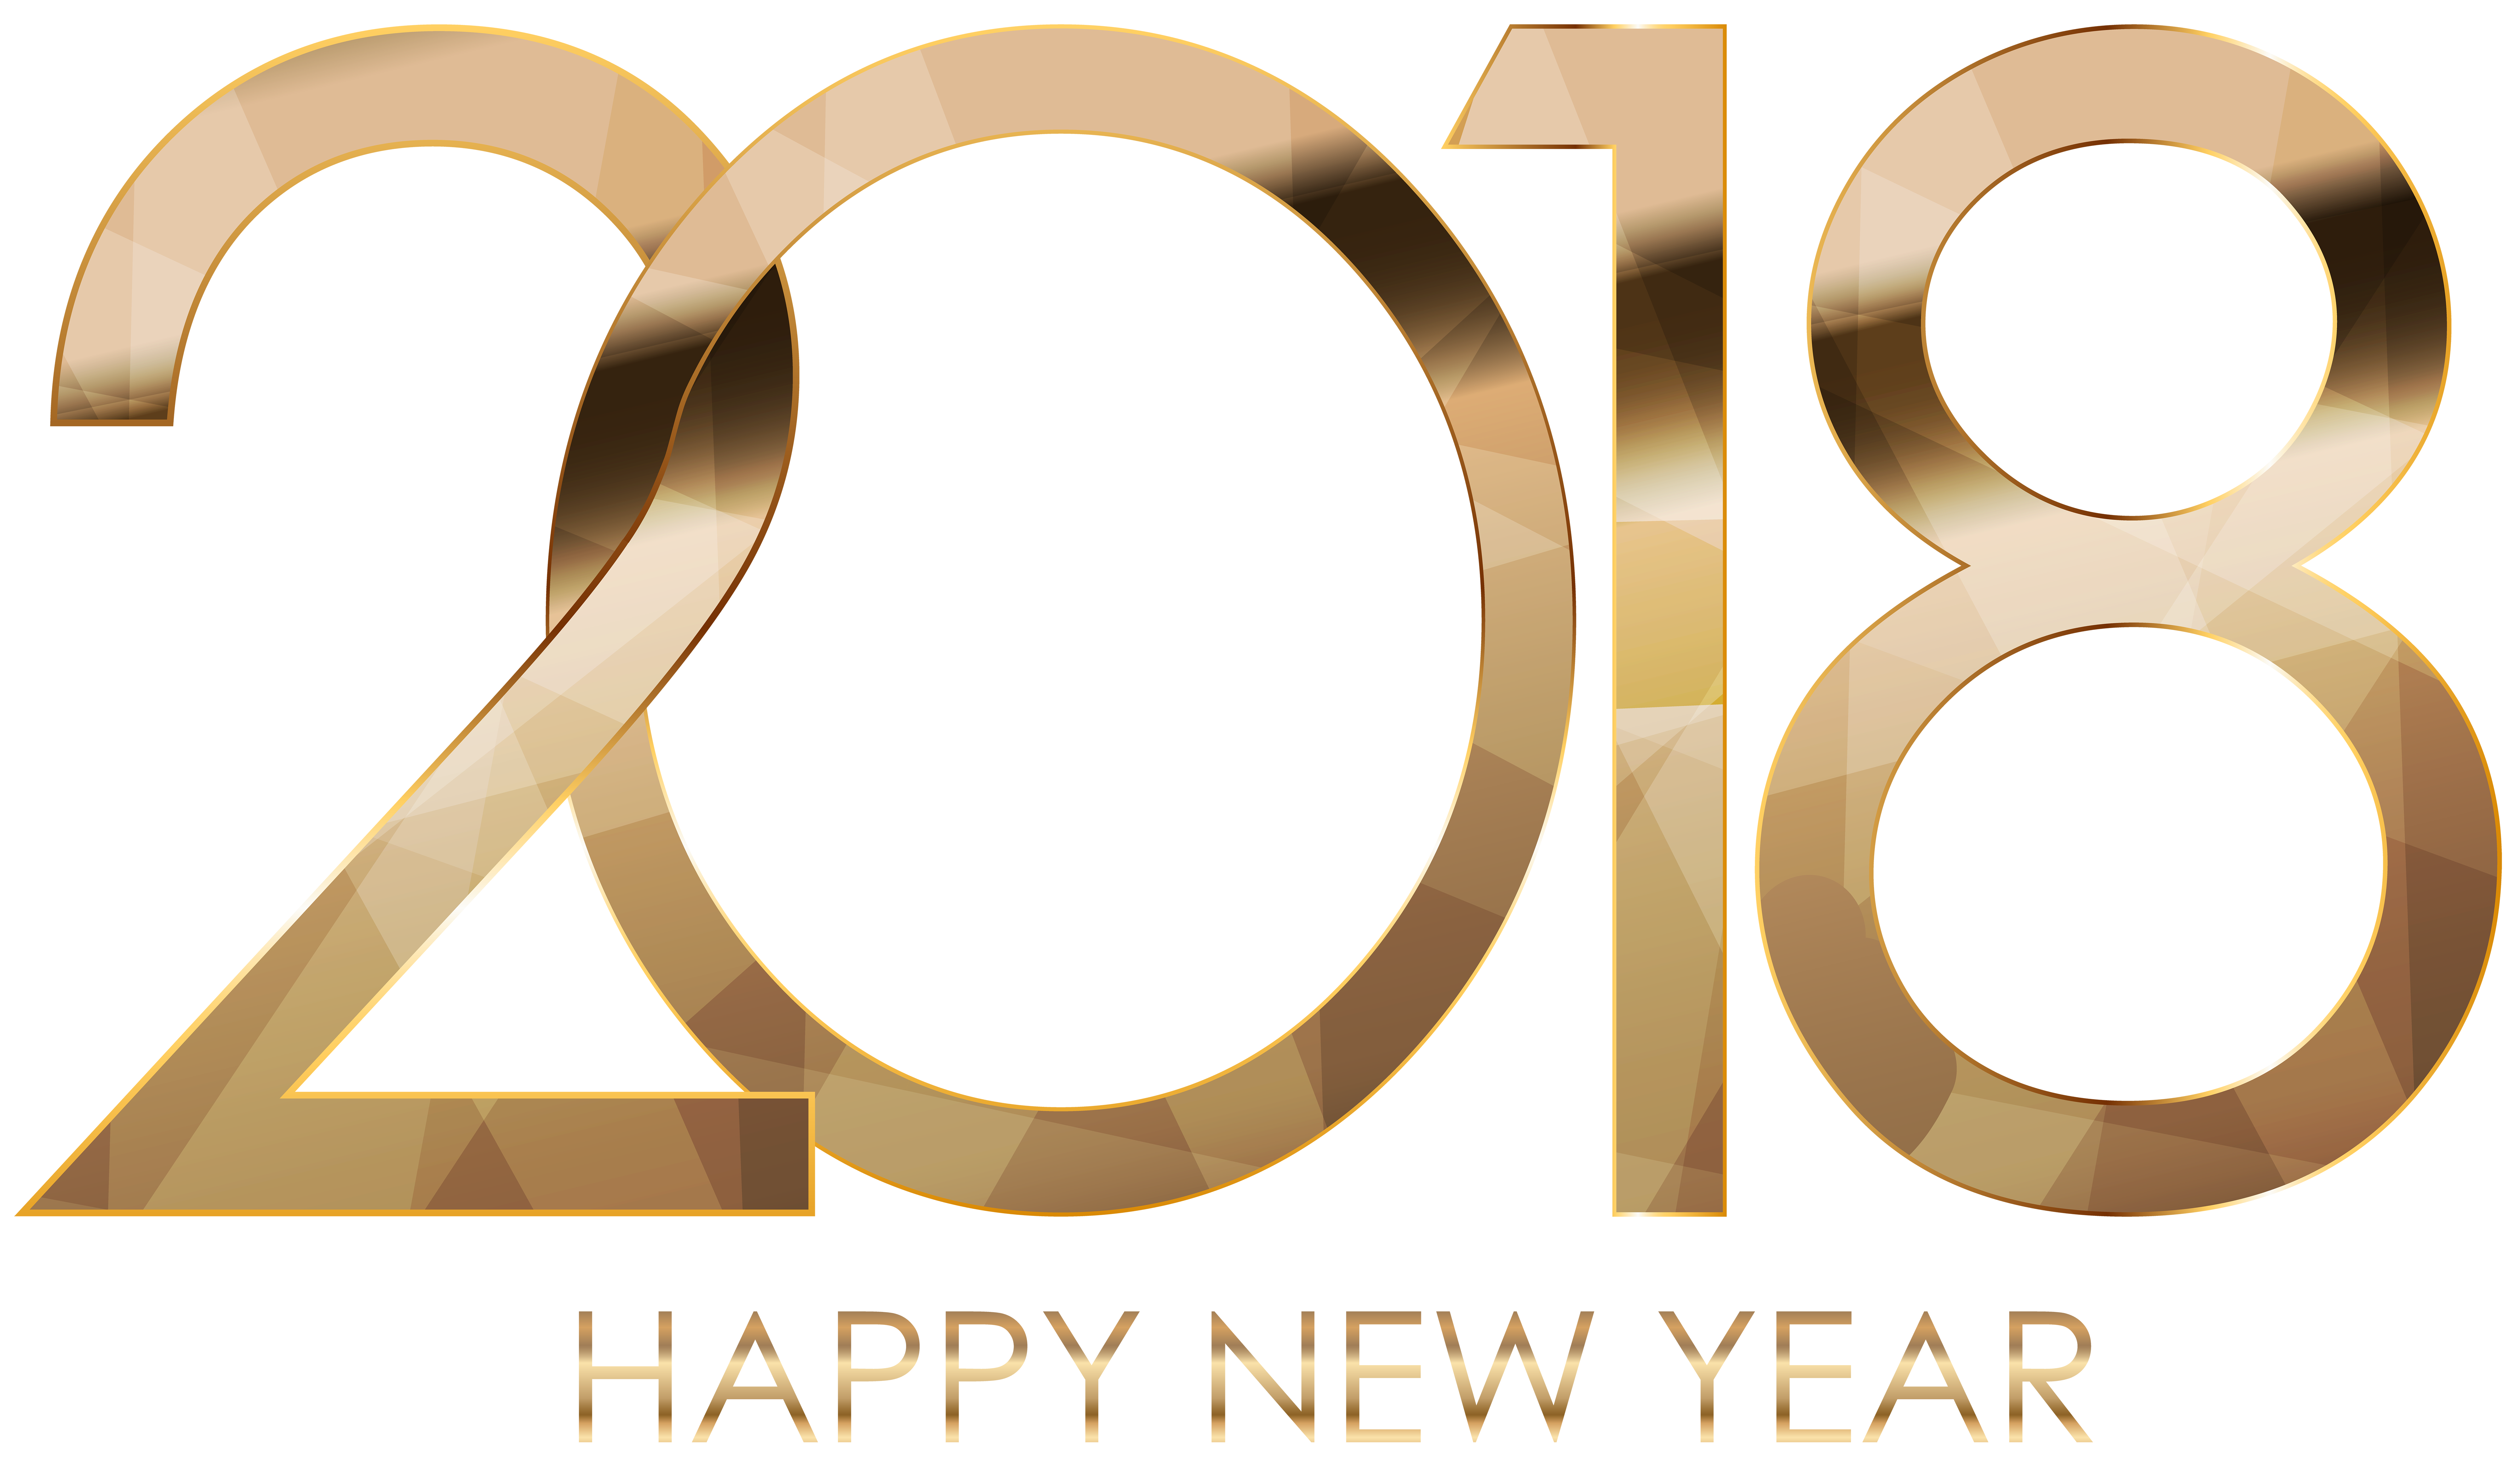 gallery yopriceville high. Happy new year gold png svg transparent download